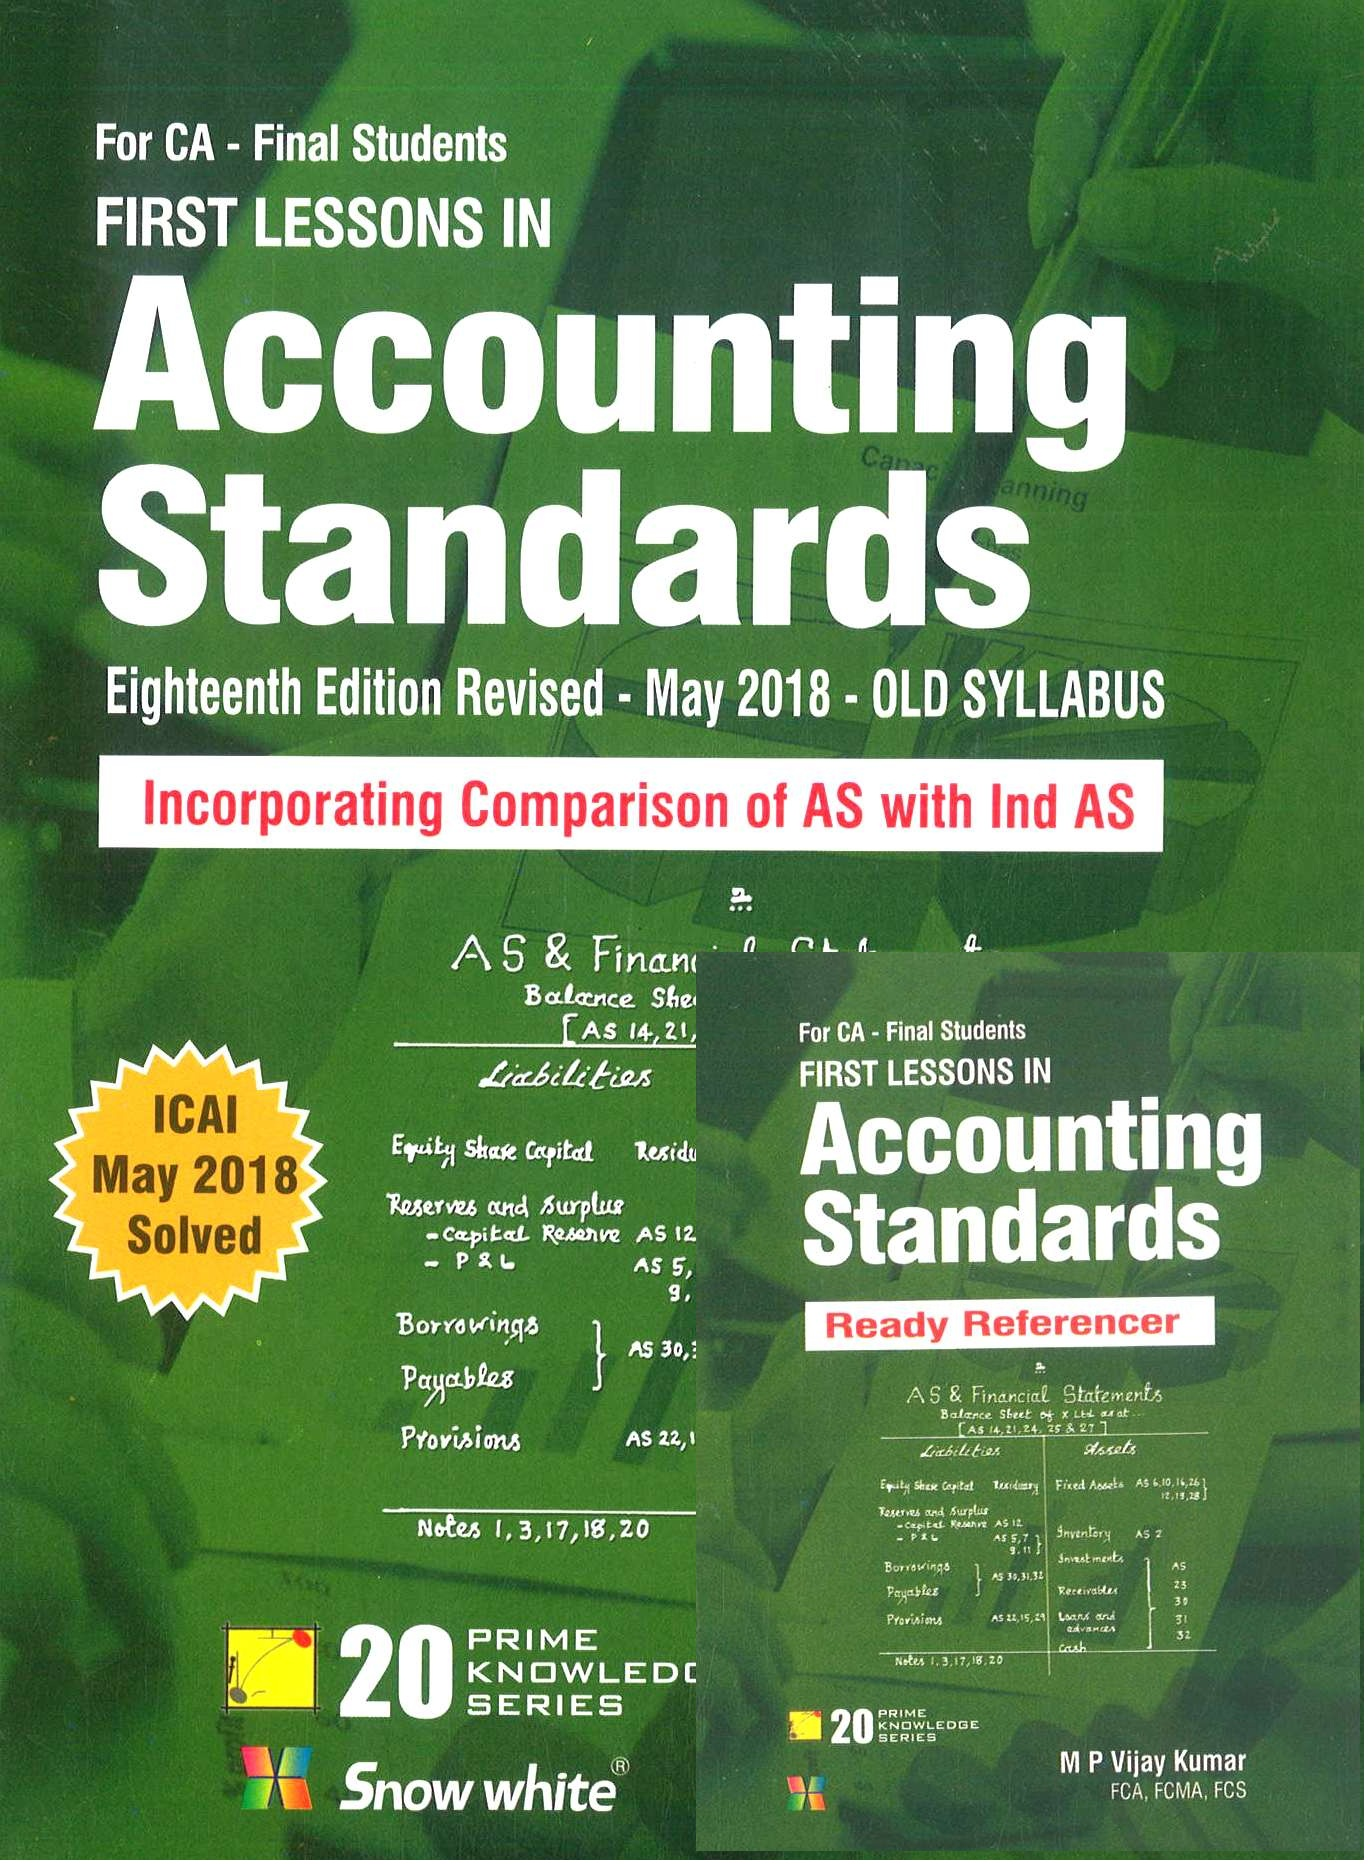 Snow White FIRST LESSONS IN Accounting Standards CA FINAL by M P Vijay Kumar (Snow White Publishing) Edition 2018 for Nov 2018 Exam